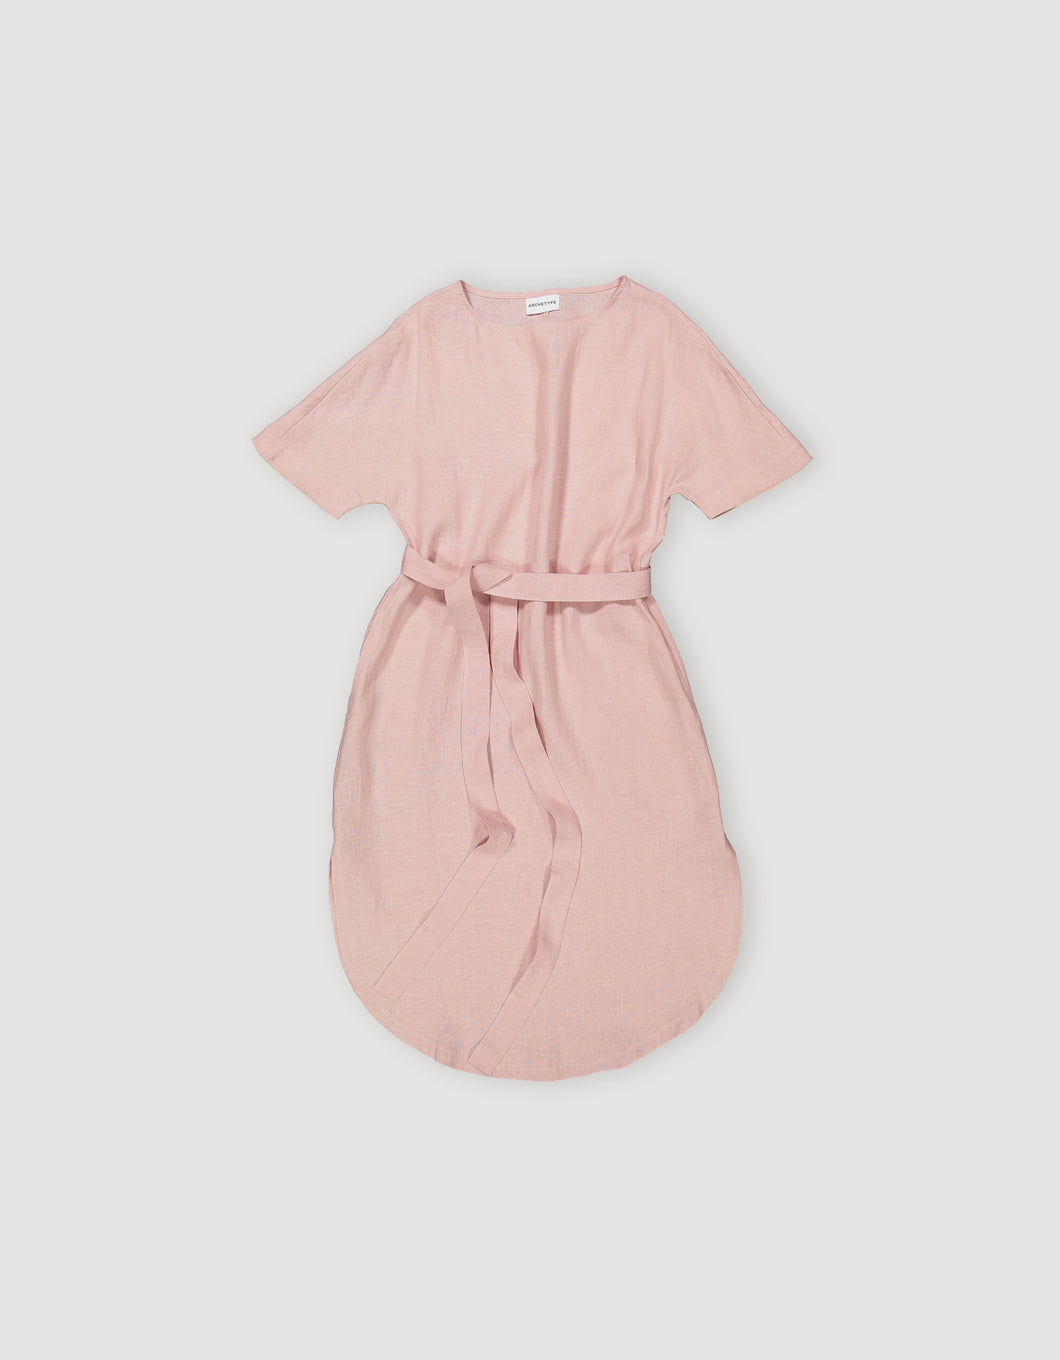 T-SHIRT DRESS WITH BELT (FADED PINK)